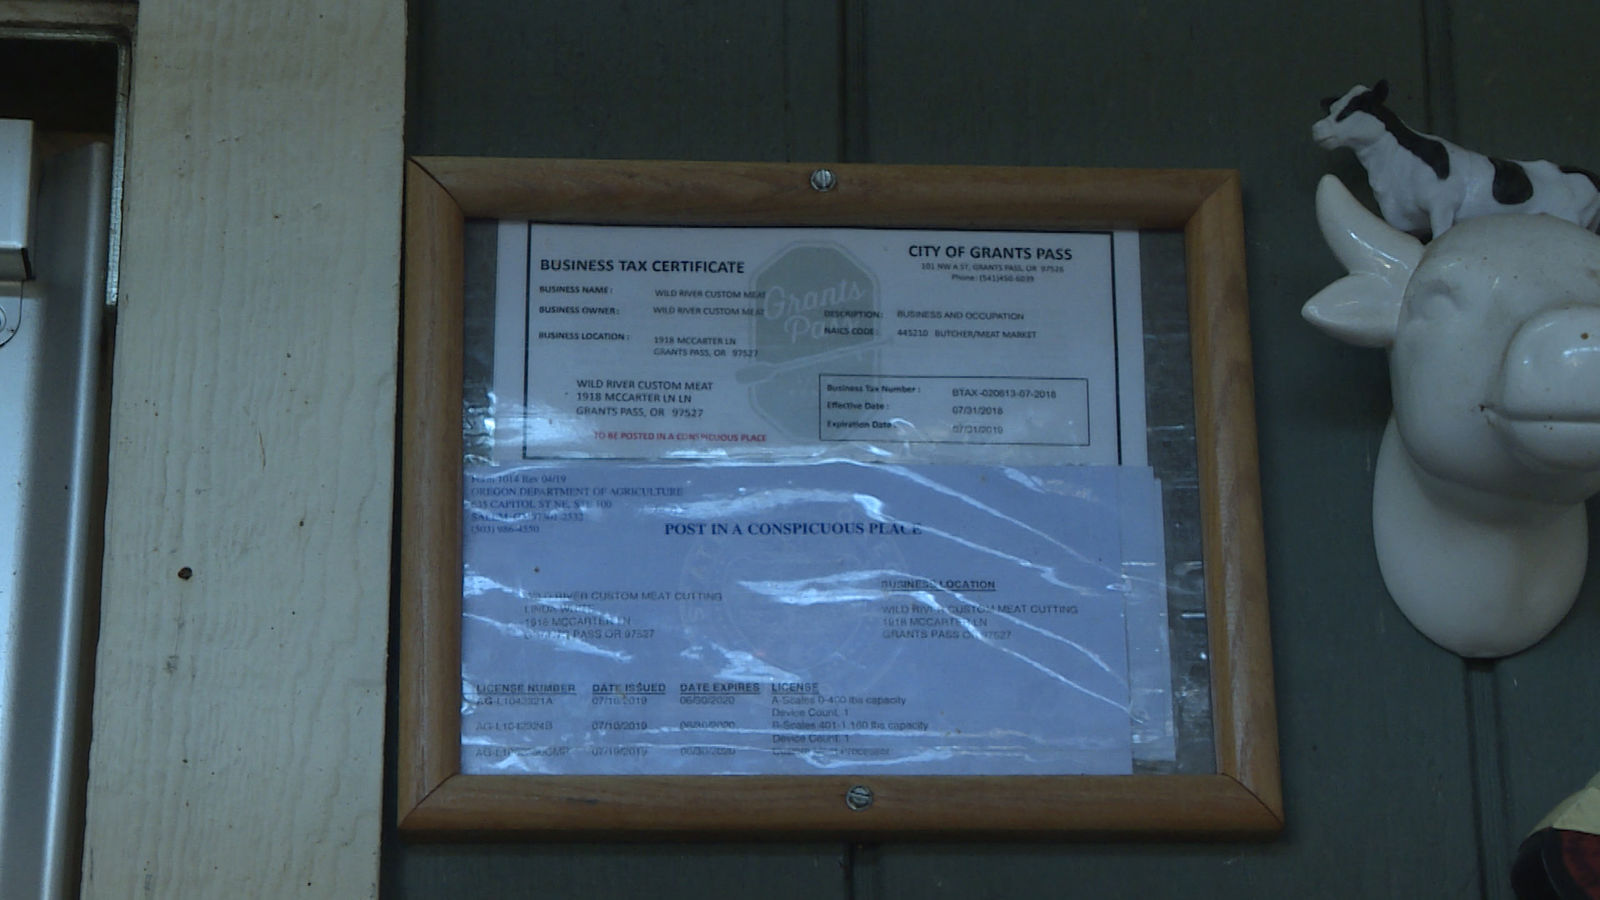 The business permit issued by the City of Grants Pass. (Carsyn Currier/News 10){&nbsp;}<p></p>